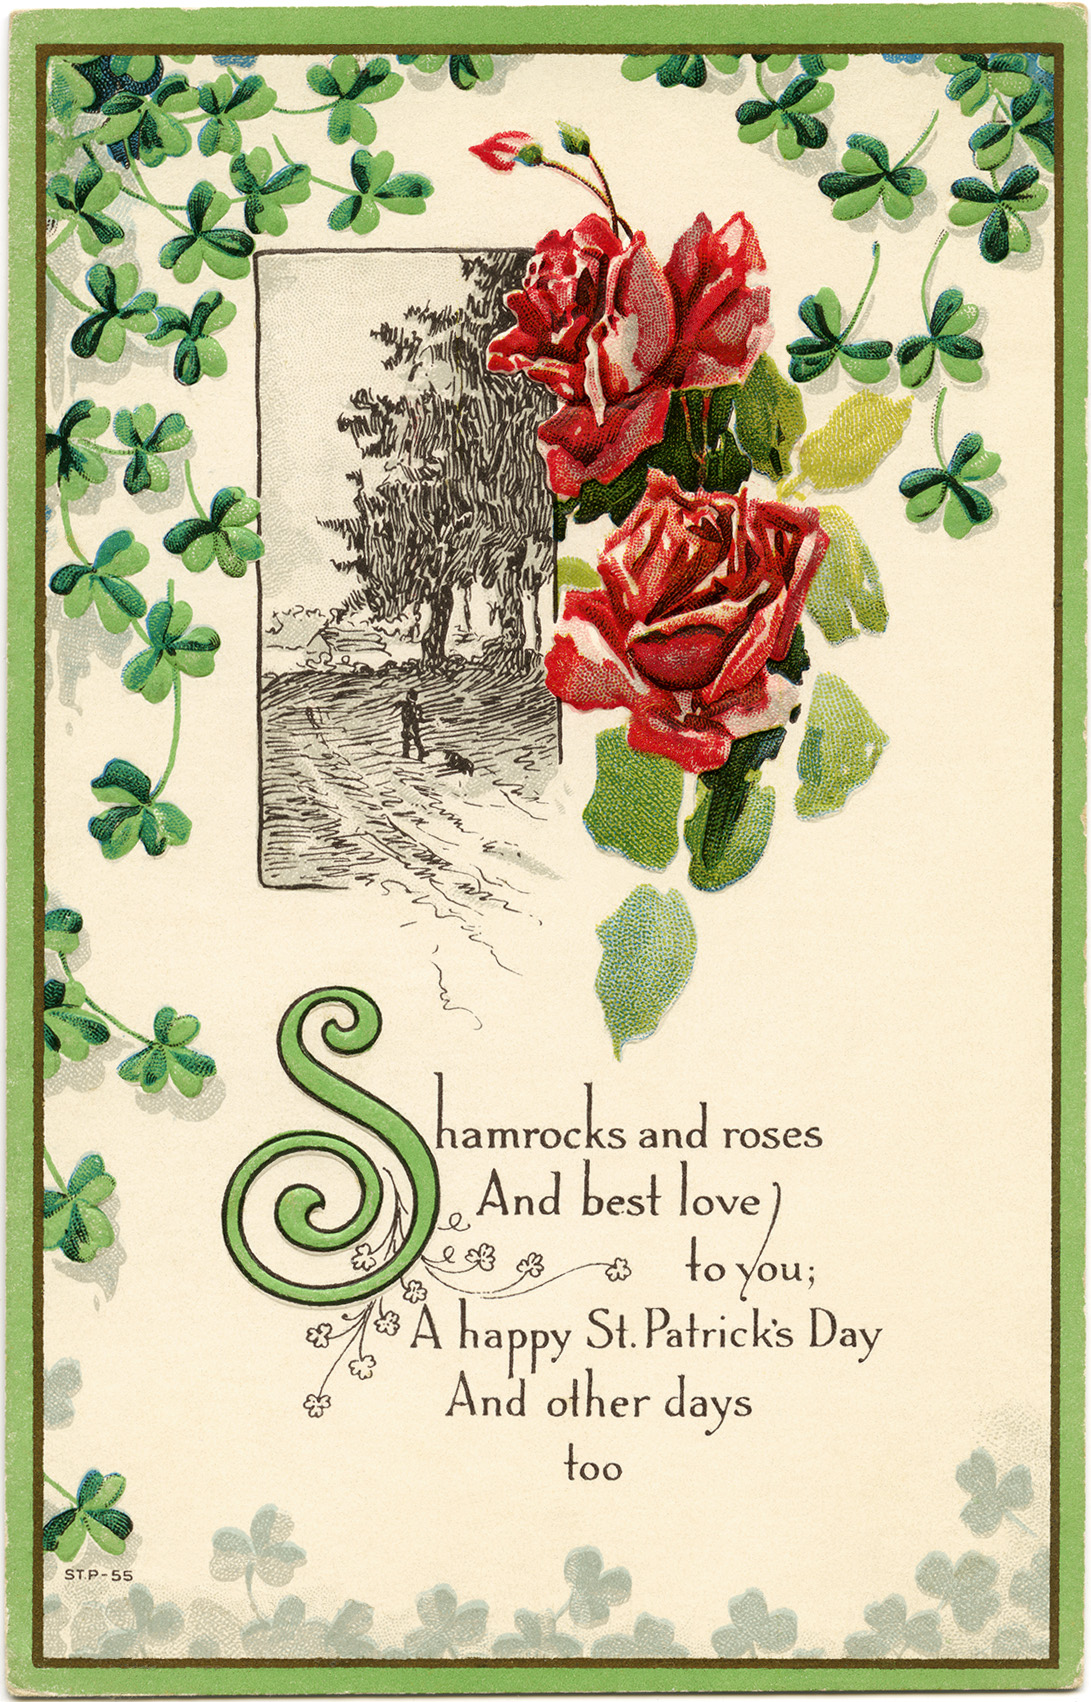 St Patrick's Day postcard, shamrocks and roses clip art, vintage postcard printable, free vintage ephemera, floral digital postcard